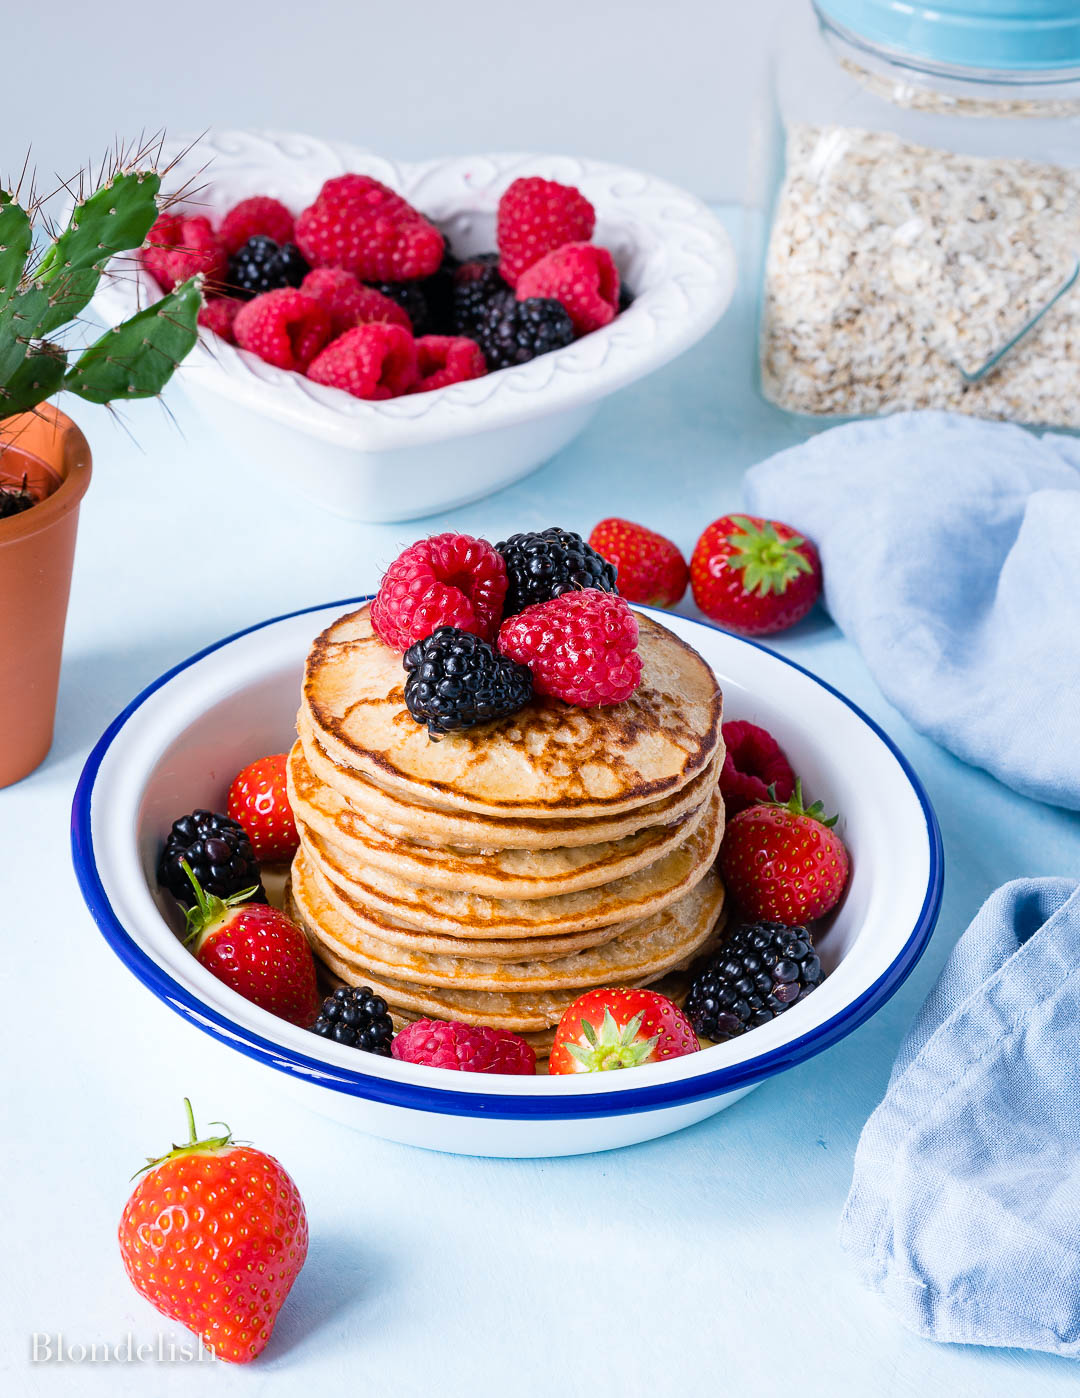 Easy Banana Oatmeal Pancakes Recipe 6